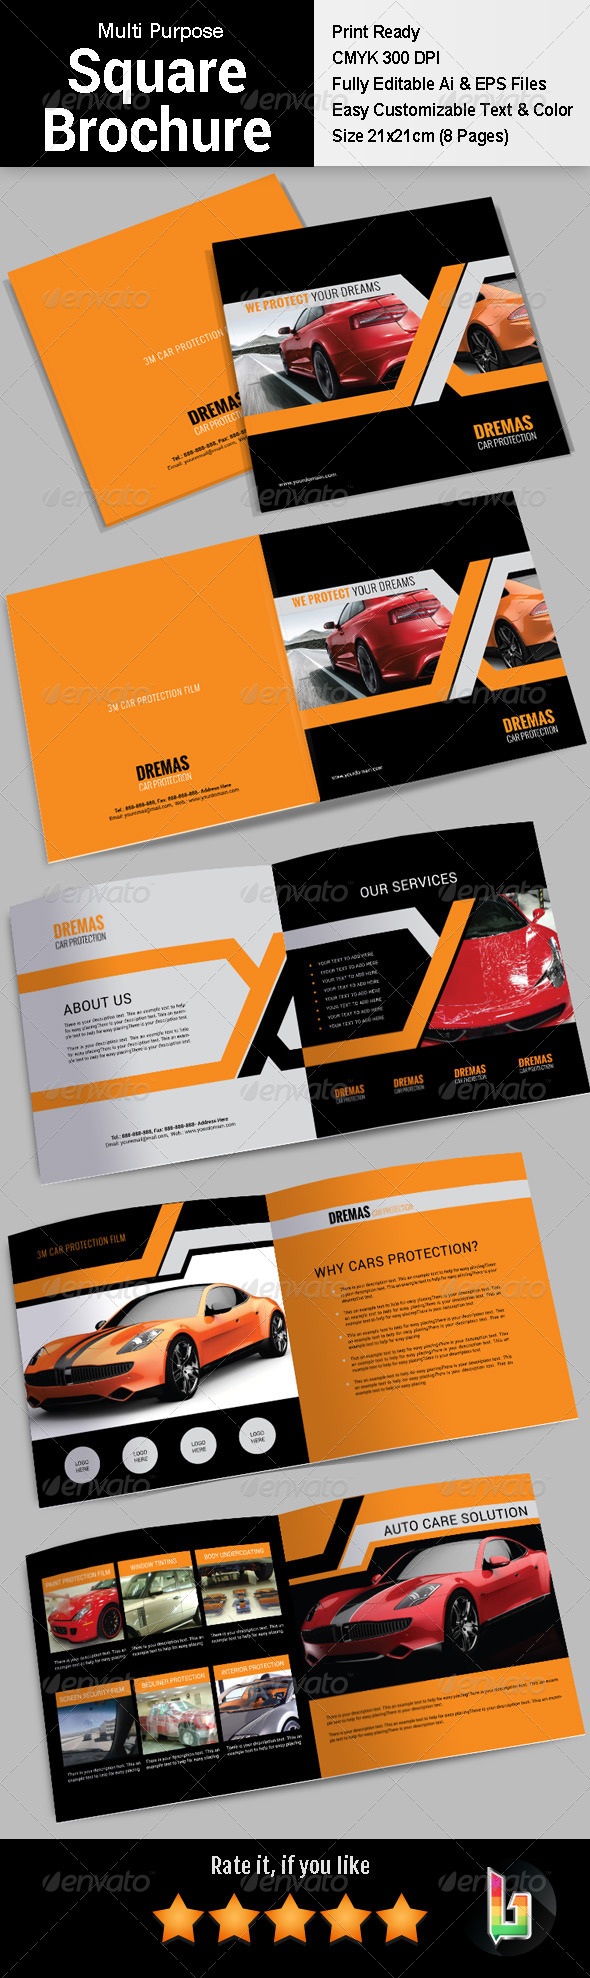 GraphicRiver Multi Purpose Square Brochure 7521926